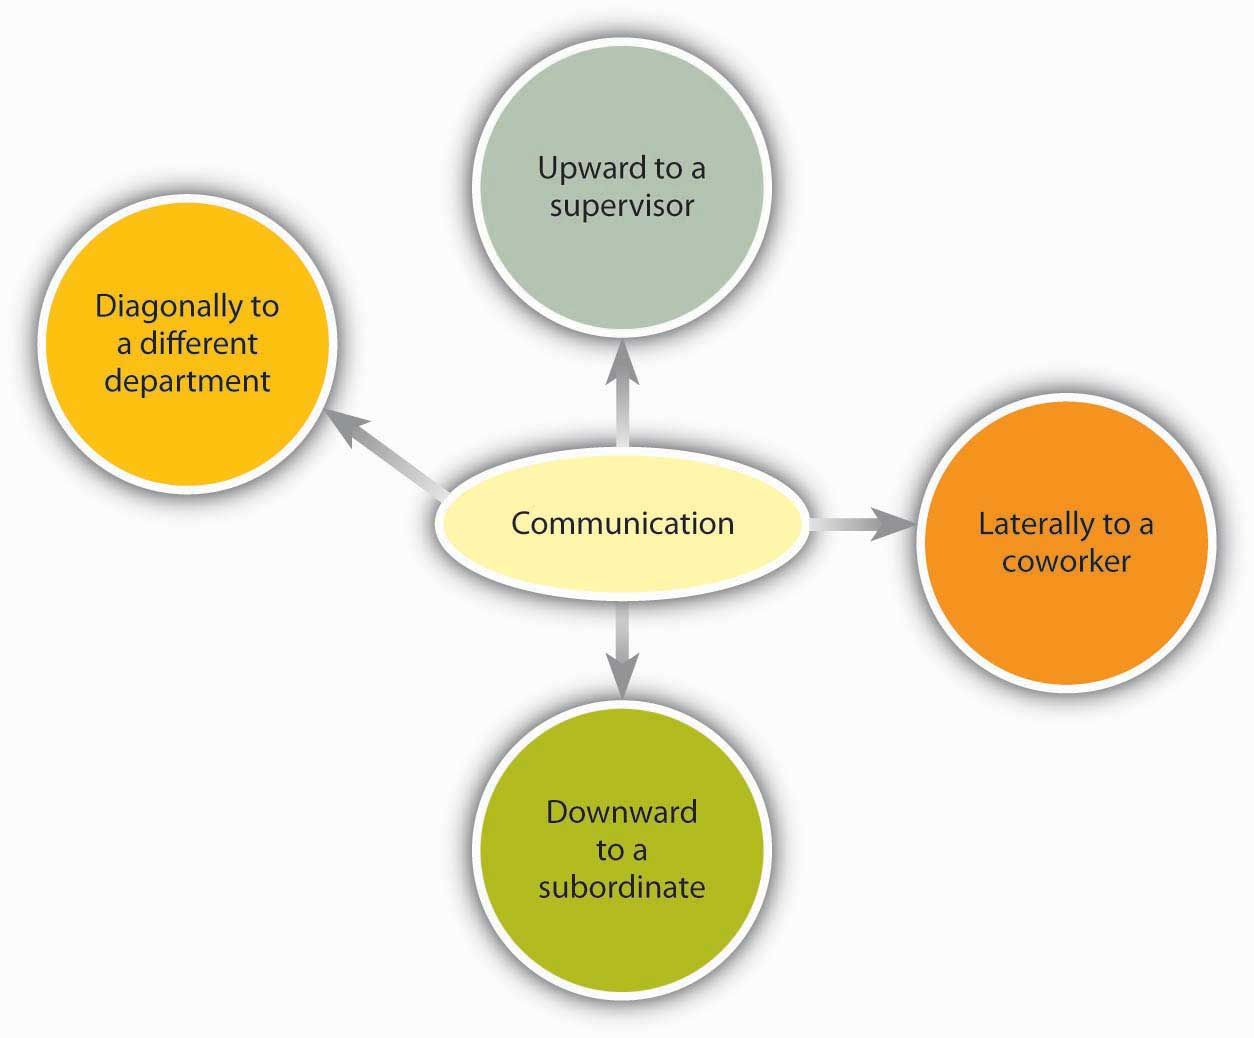 Communication in the organization